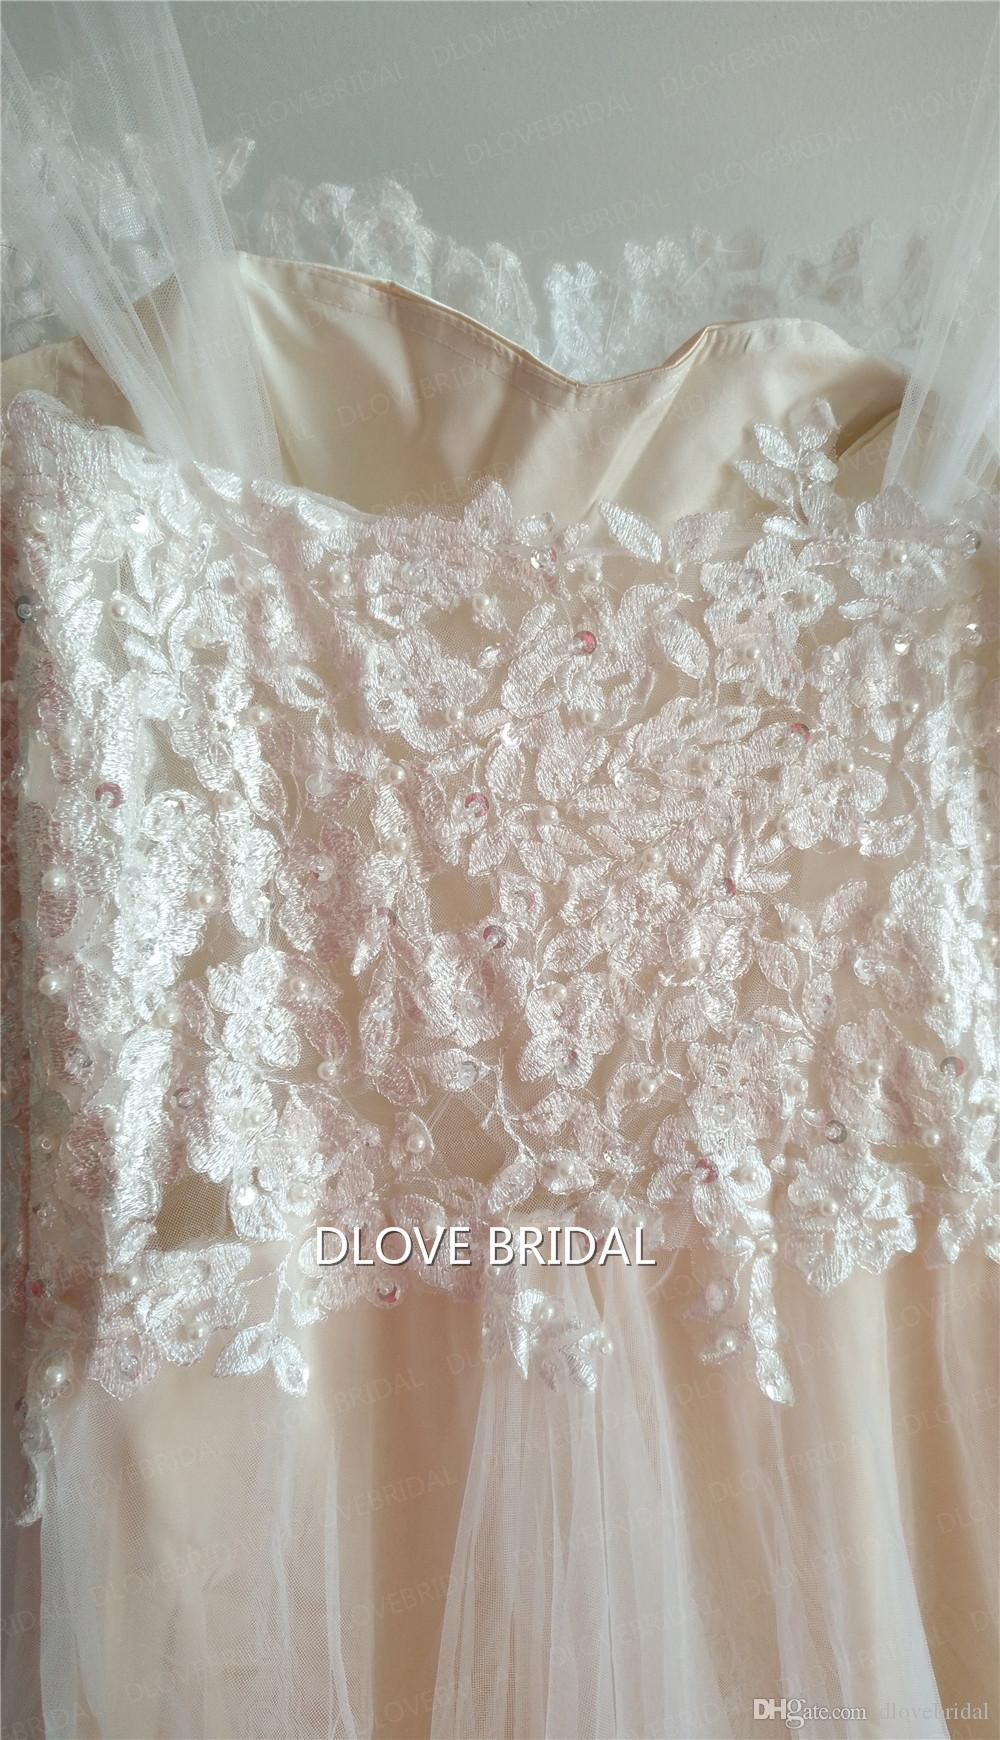 Real Images Illusion Lace Wedding Dress Boho Lace Tulle Pearl Beaded Bridal Gown Low Price but High Quality Vestido de Noiva